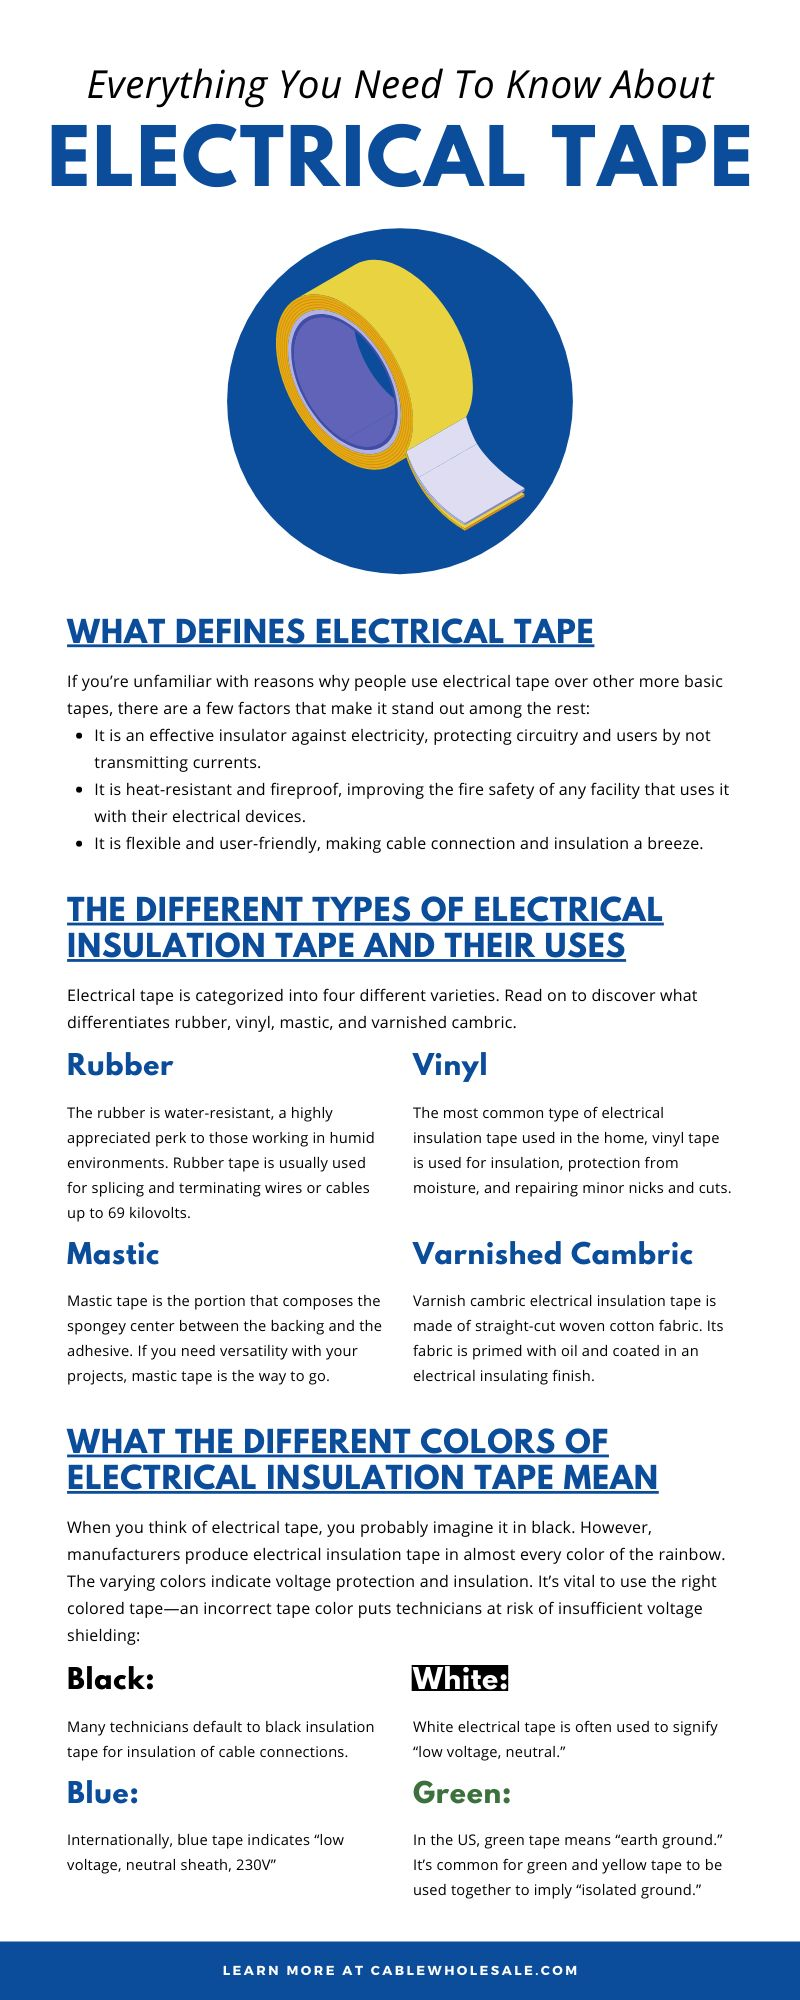 Everything You Need To Know About Electrical Tape